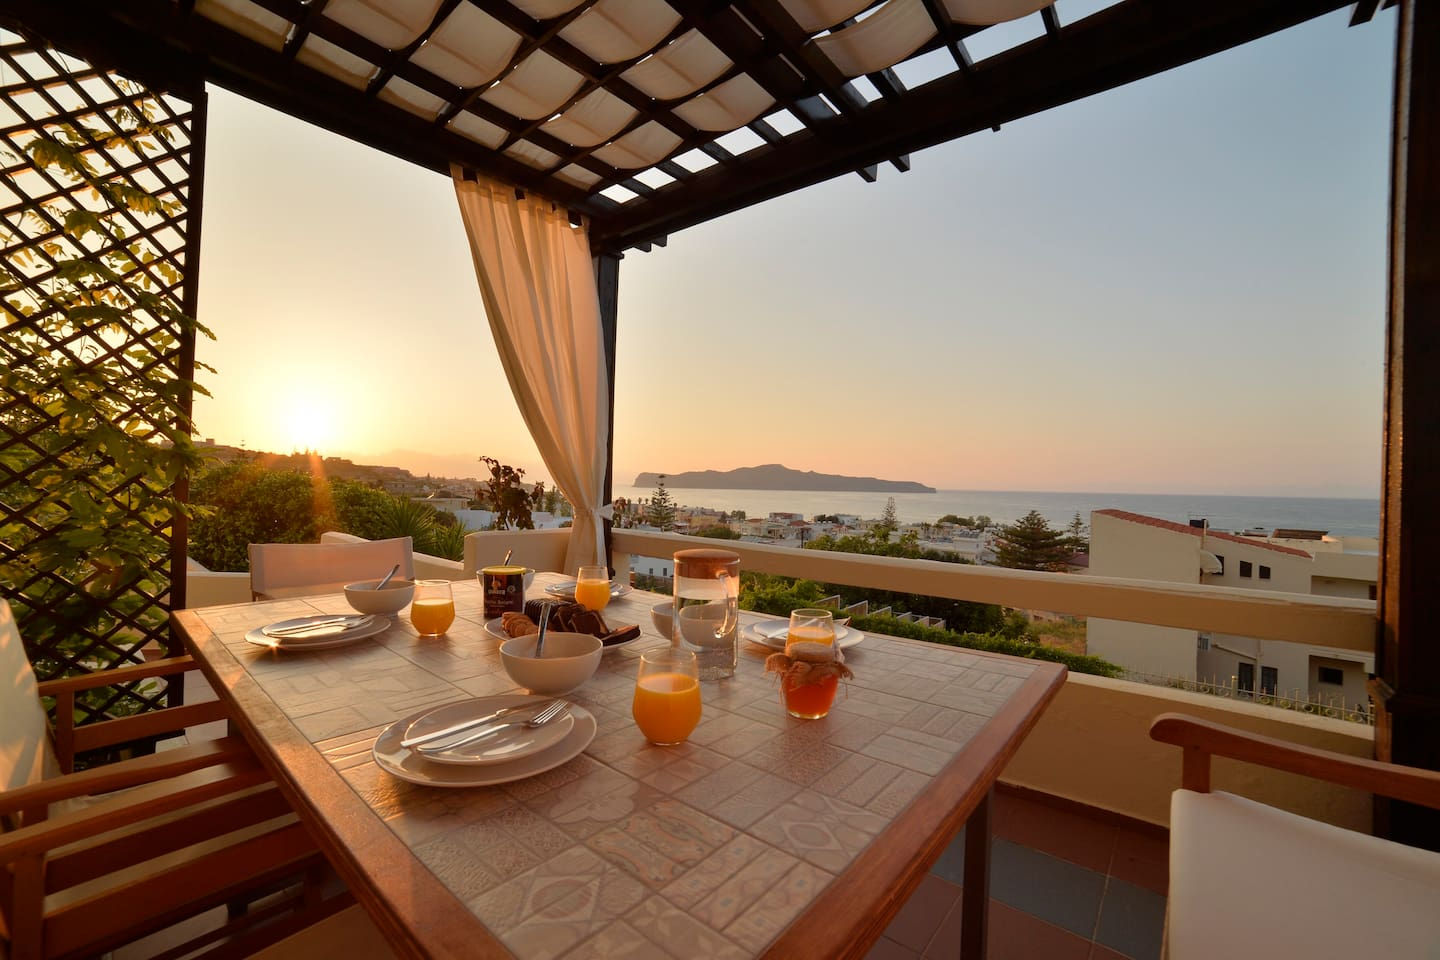 SeaView Garden Villa - Villas for Rent in Chania, Greece